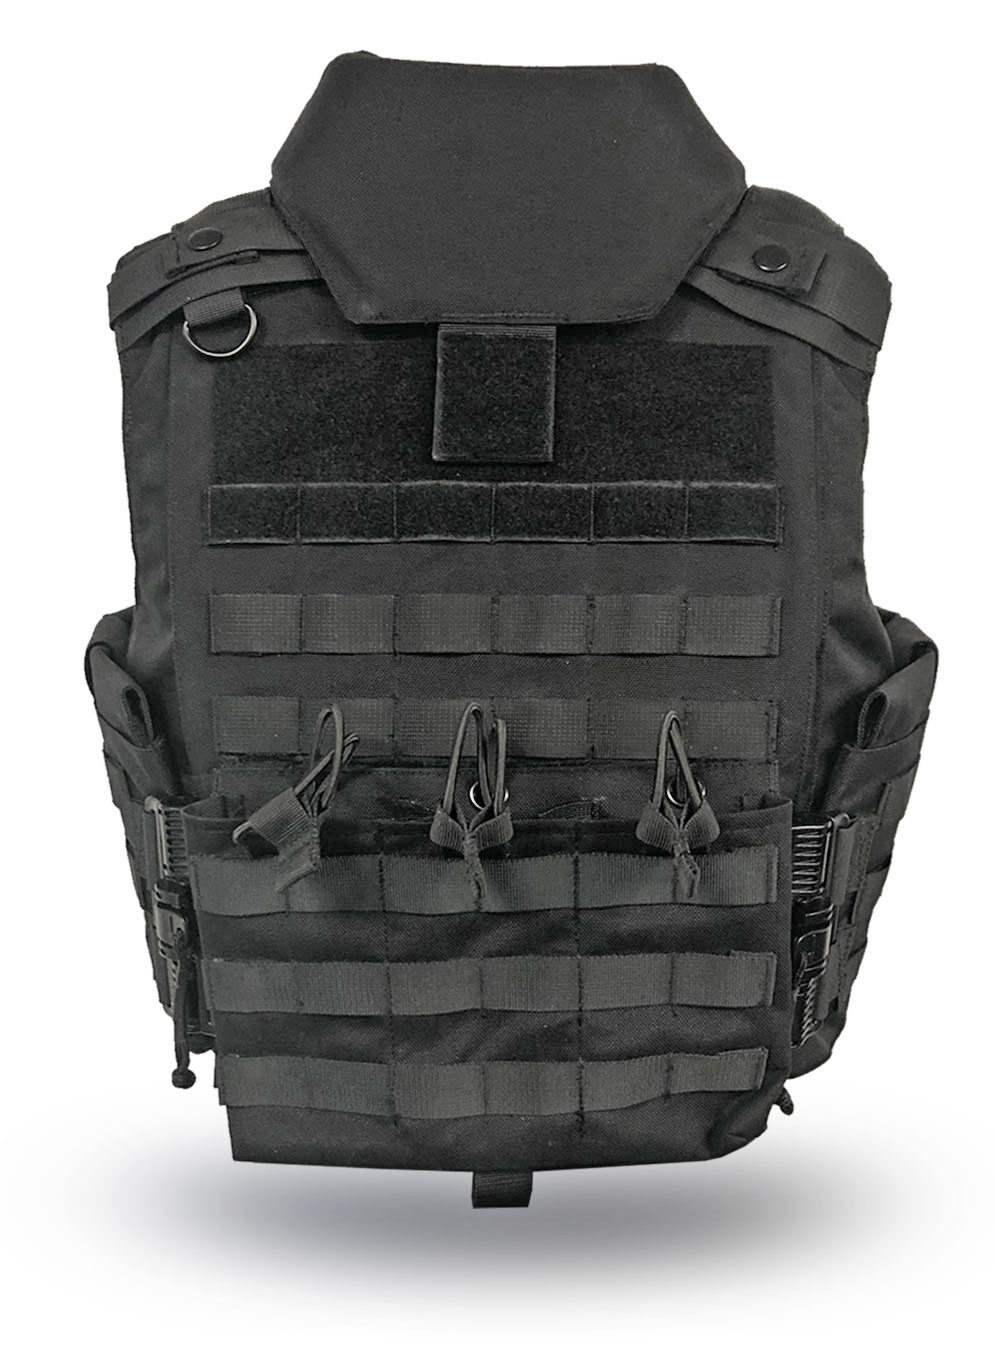 vest body armor lrg 1571 battle